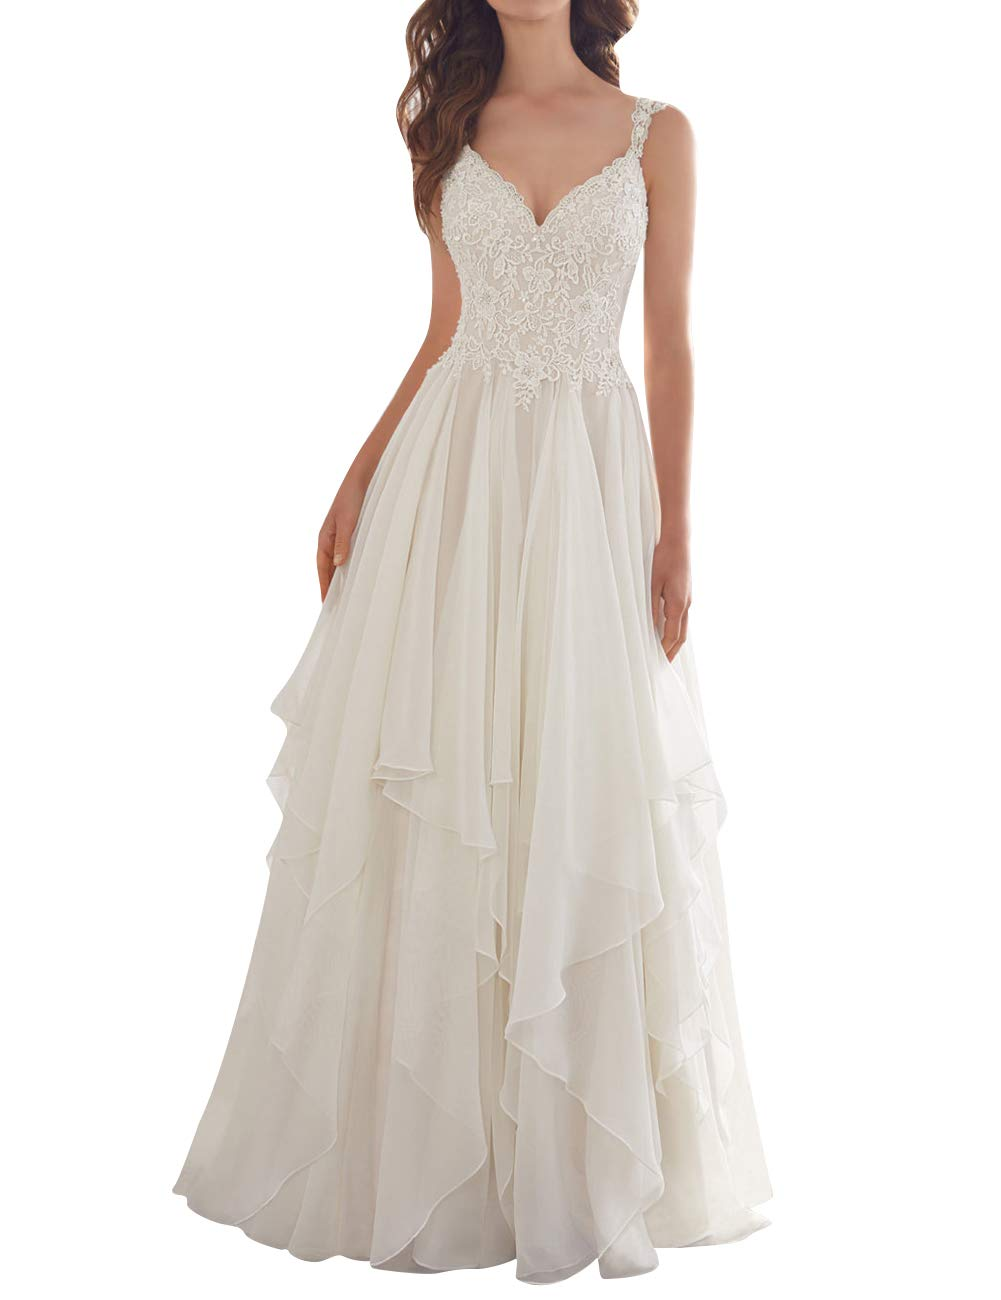 TOPGEE Womens Wedding Dress Bride Lace Applique Dress V Neck Straps Ball Gowns